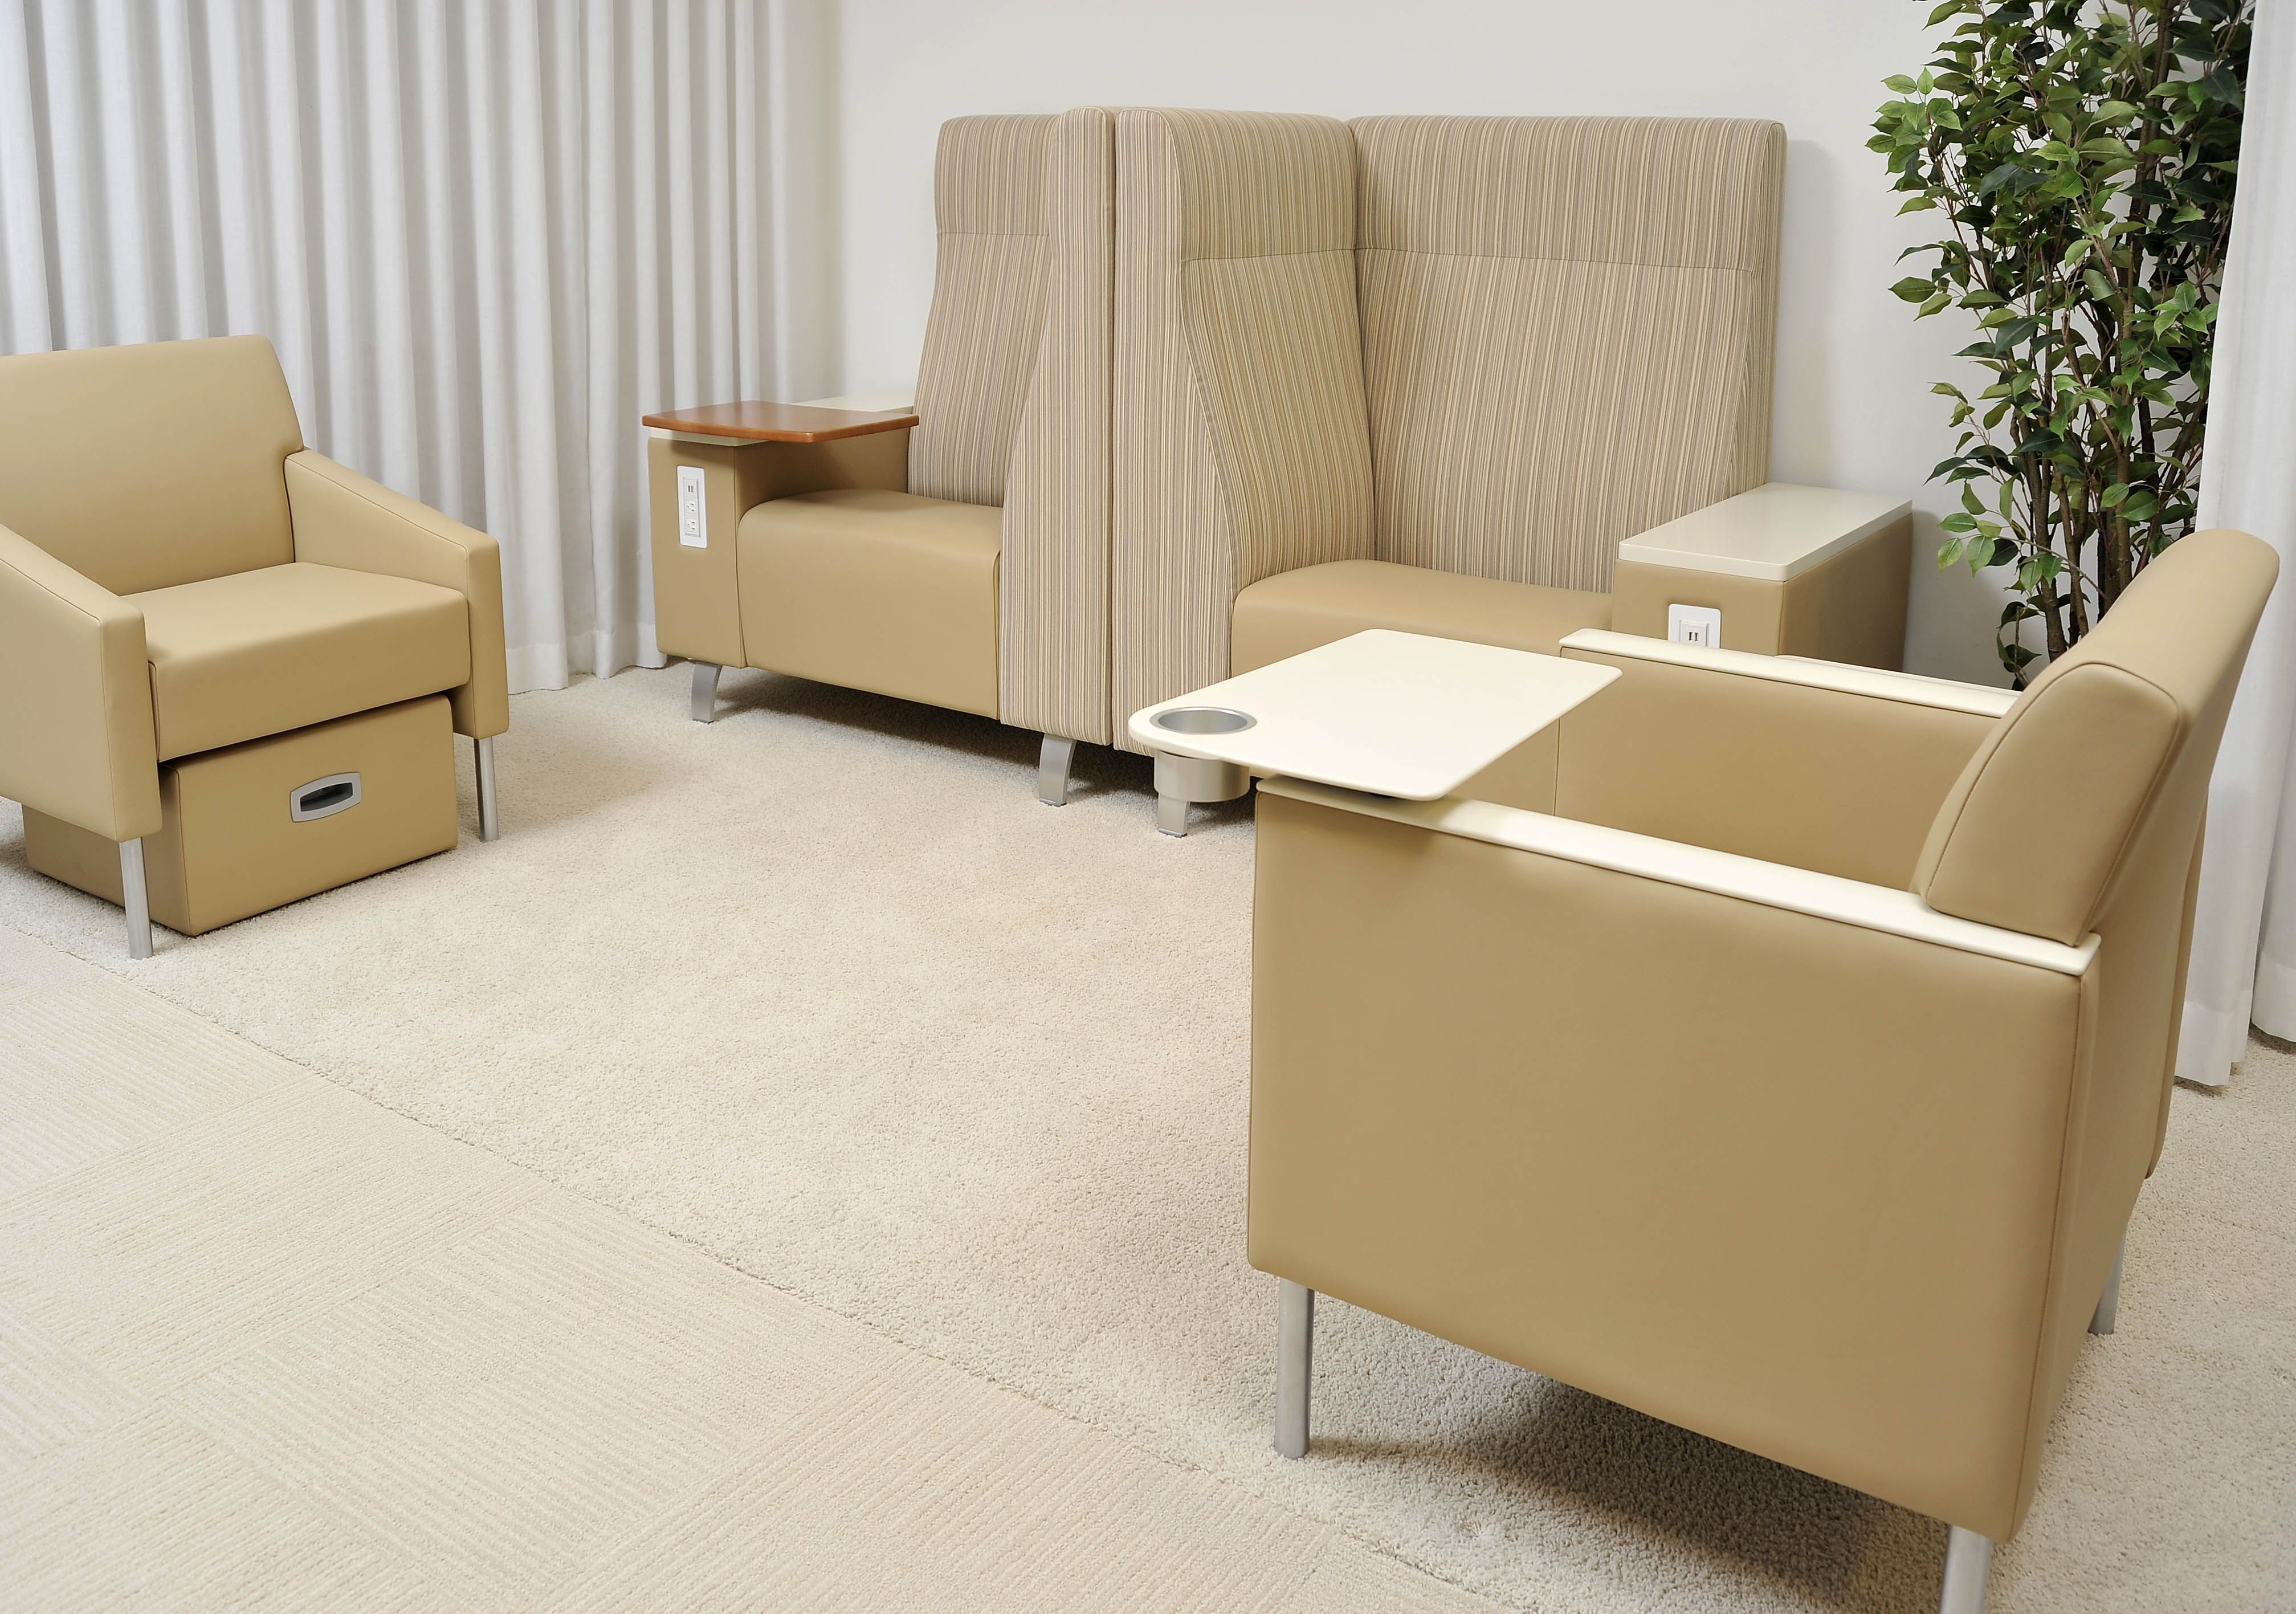 Integra Seating Solutions Have A Lb Weight Limit And A - Integra furniture